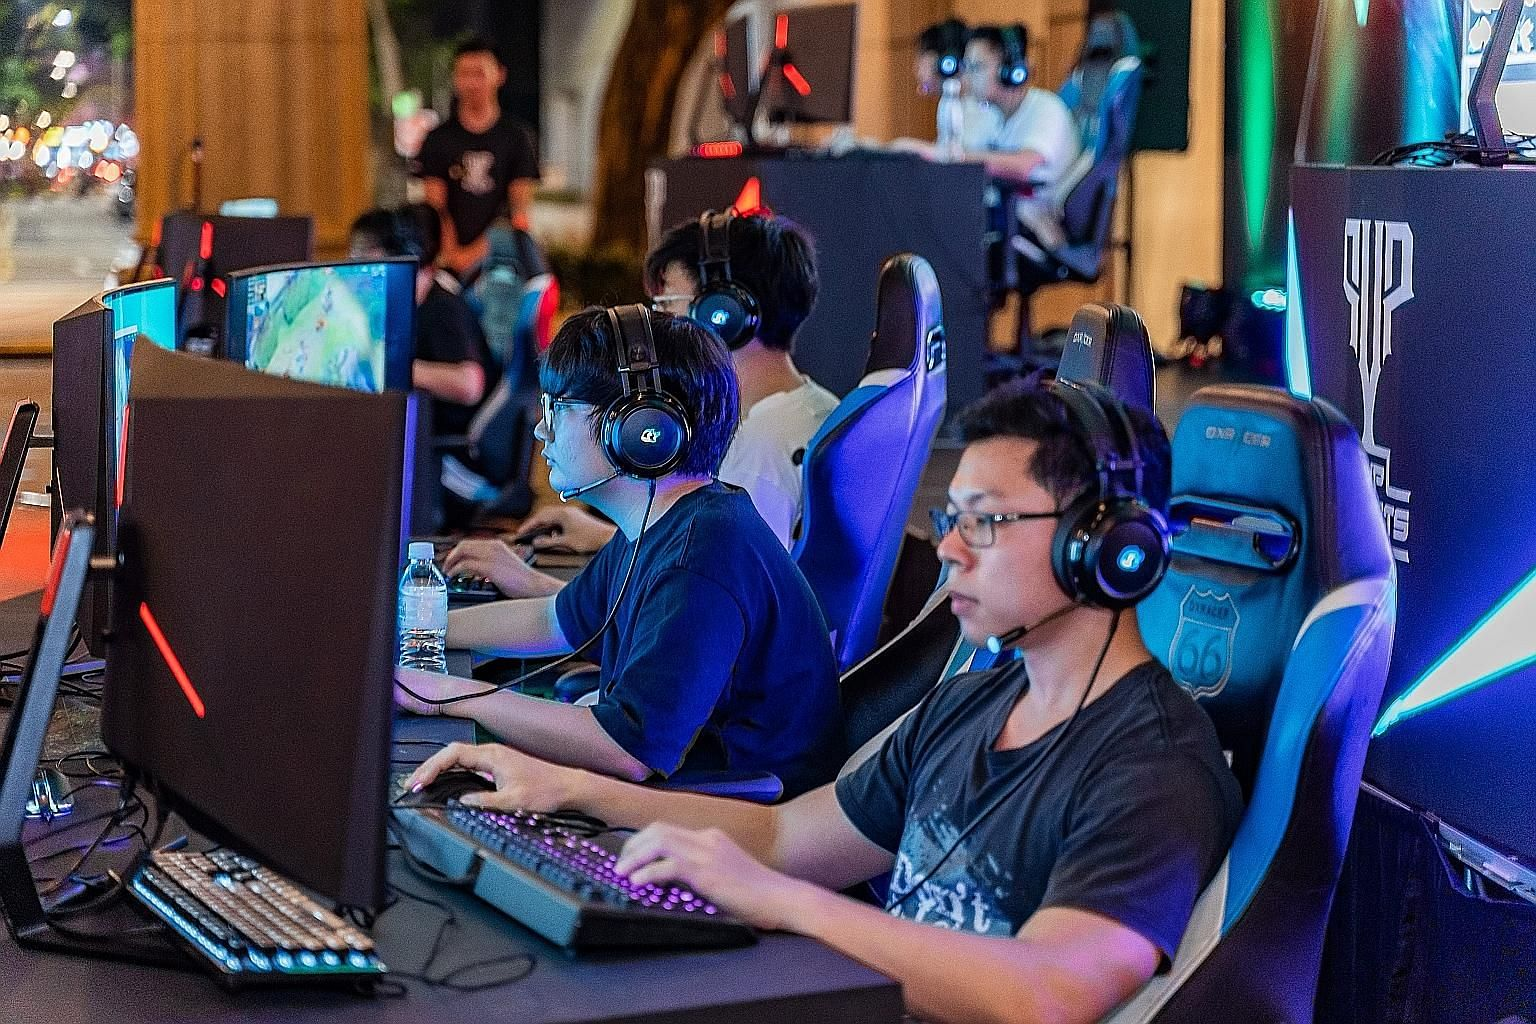 Singtel launched its PVP Esports platform in 2018 to host a regional tournament and connect with younger audiences. Its joint venture with Thai associate AIS and South Korea's SK Telecom reportedly aims to provide a global social network of gamers an